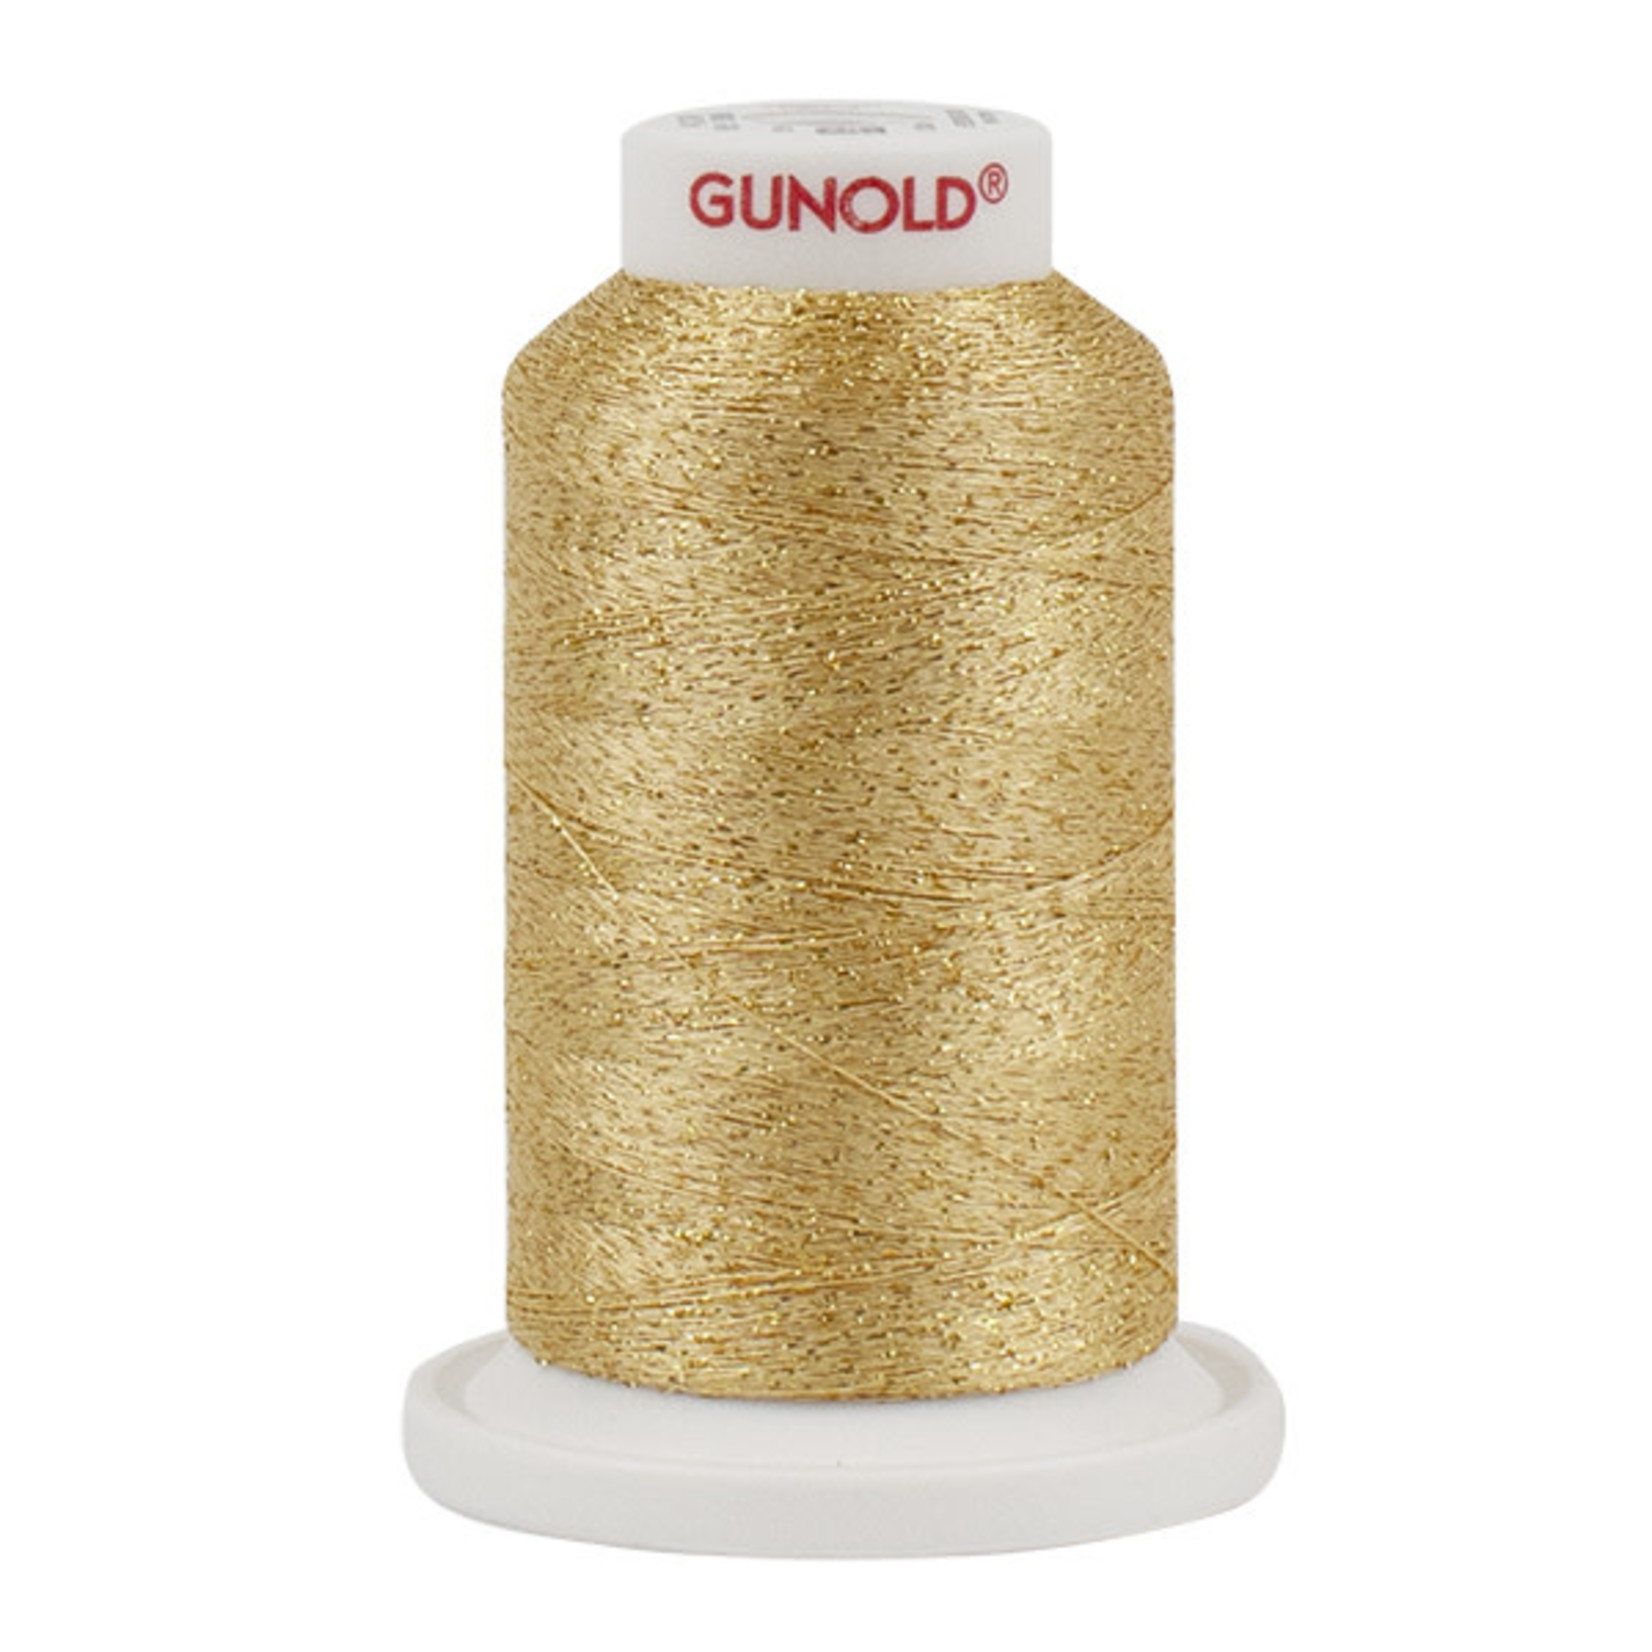 Gunold Poly Sparkle™ (Star™) Mini-King Cone 1,100 YD, 30 Wt, Gold with Gold Sparkle 50905